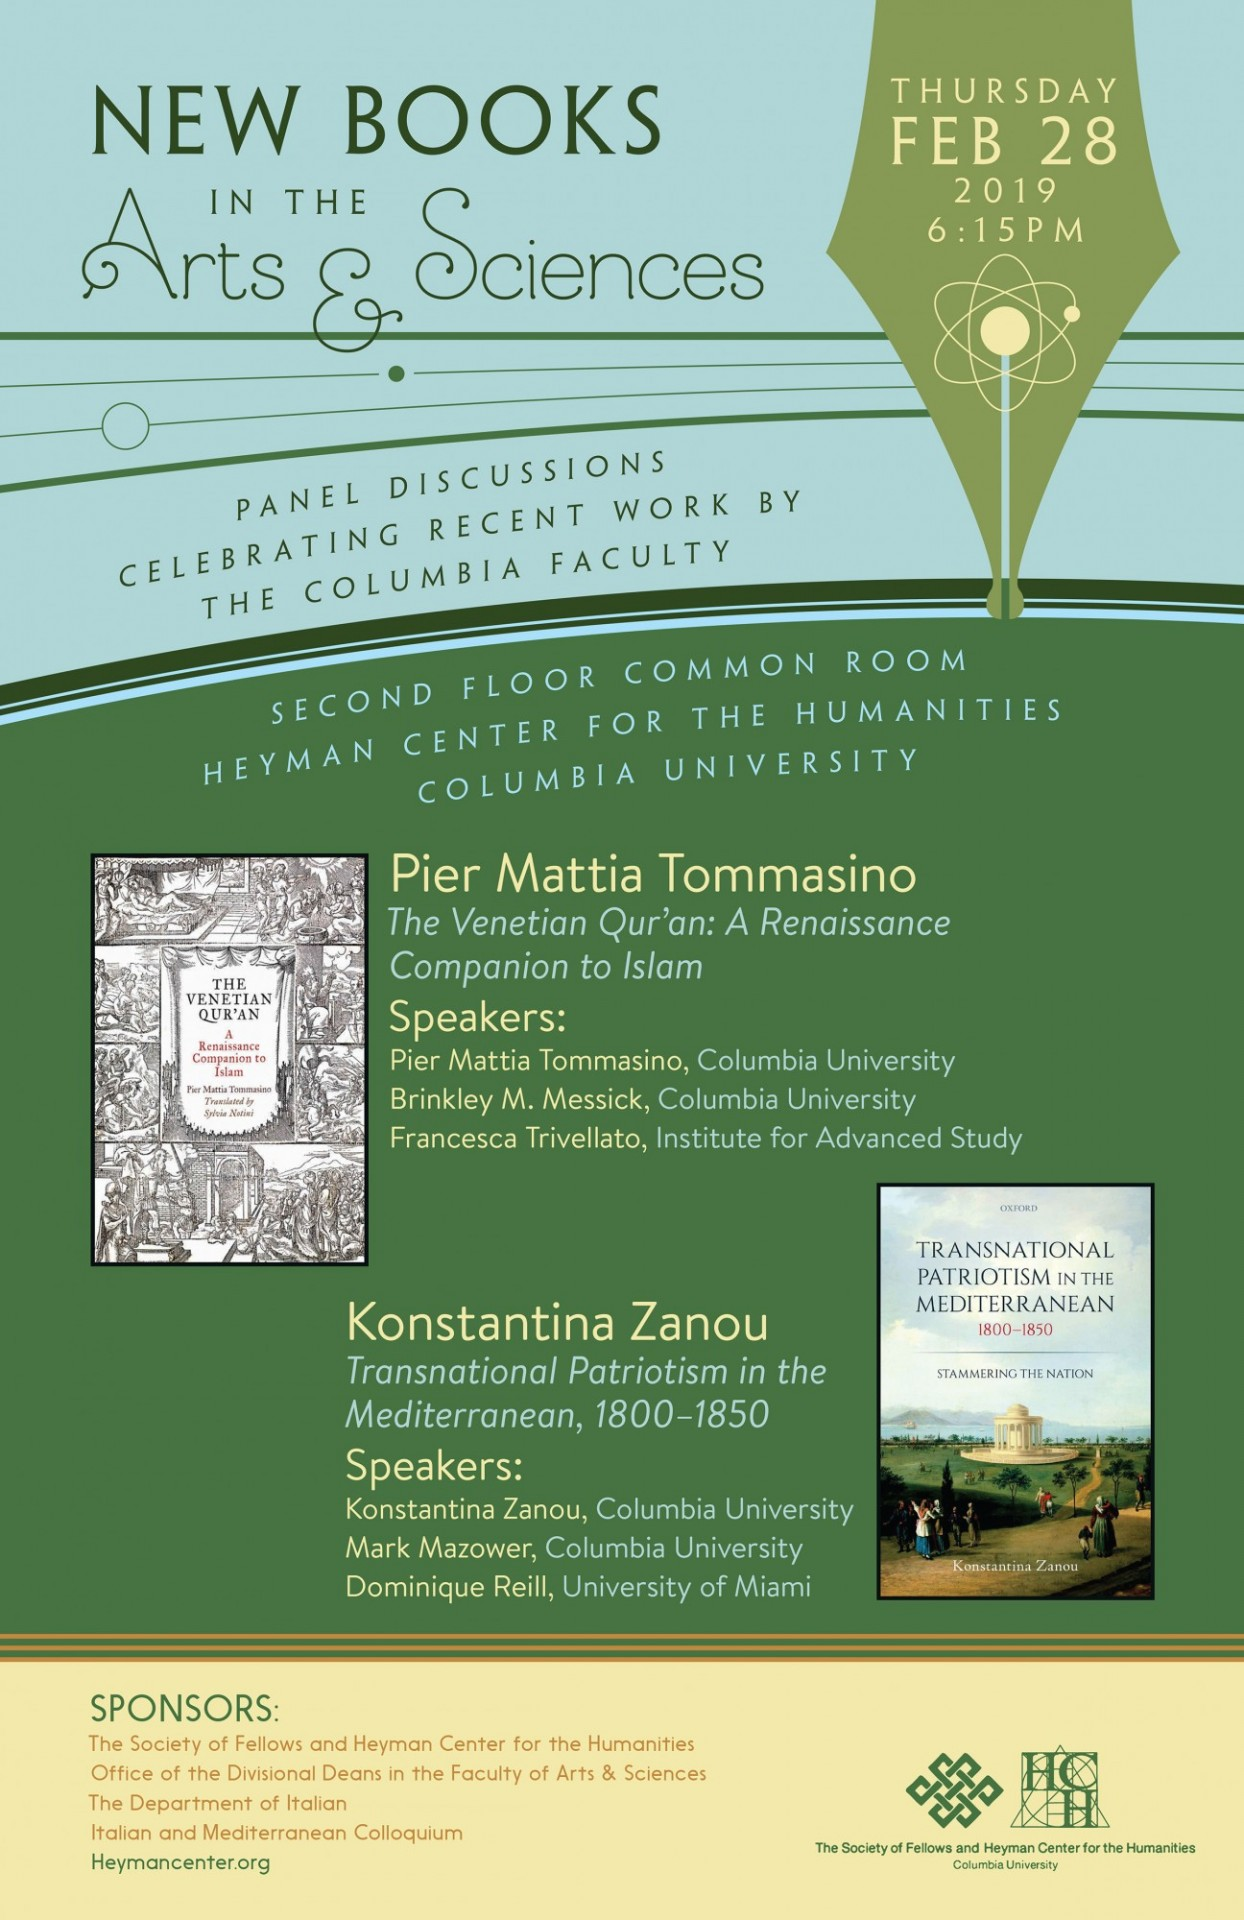 "Poster advertising event ""New Books in the Arts & Sciences: Celebrating Recent Work by Pier Mattia Tommasino and Konstantina Zanou"""